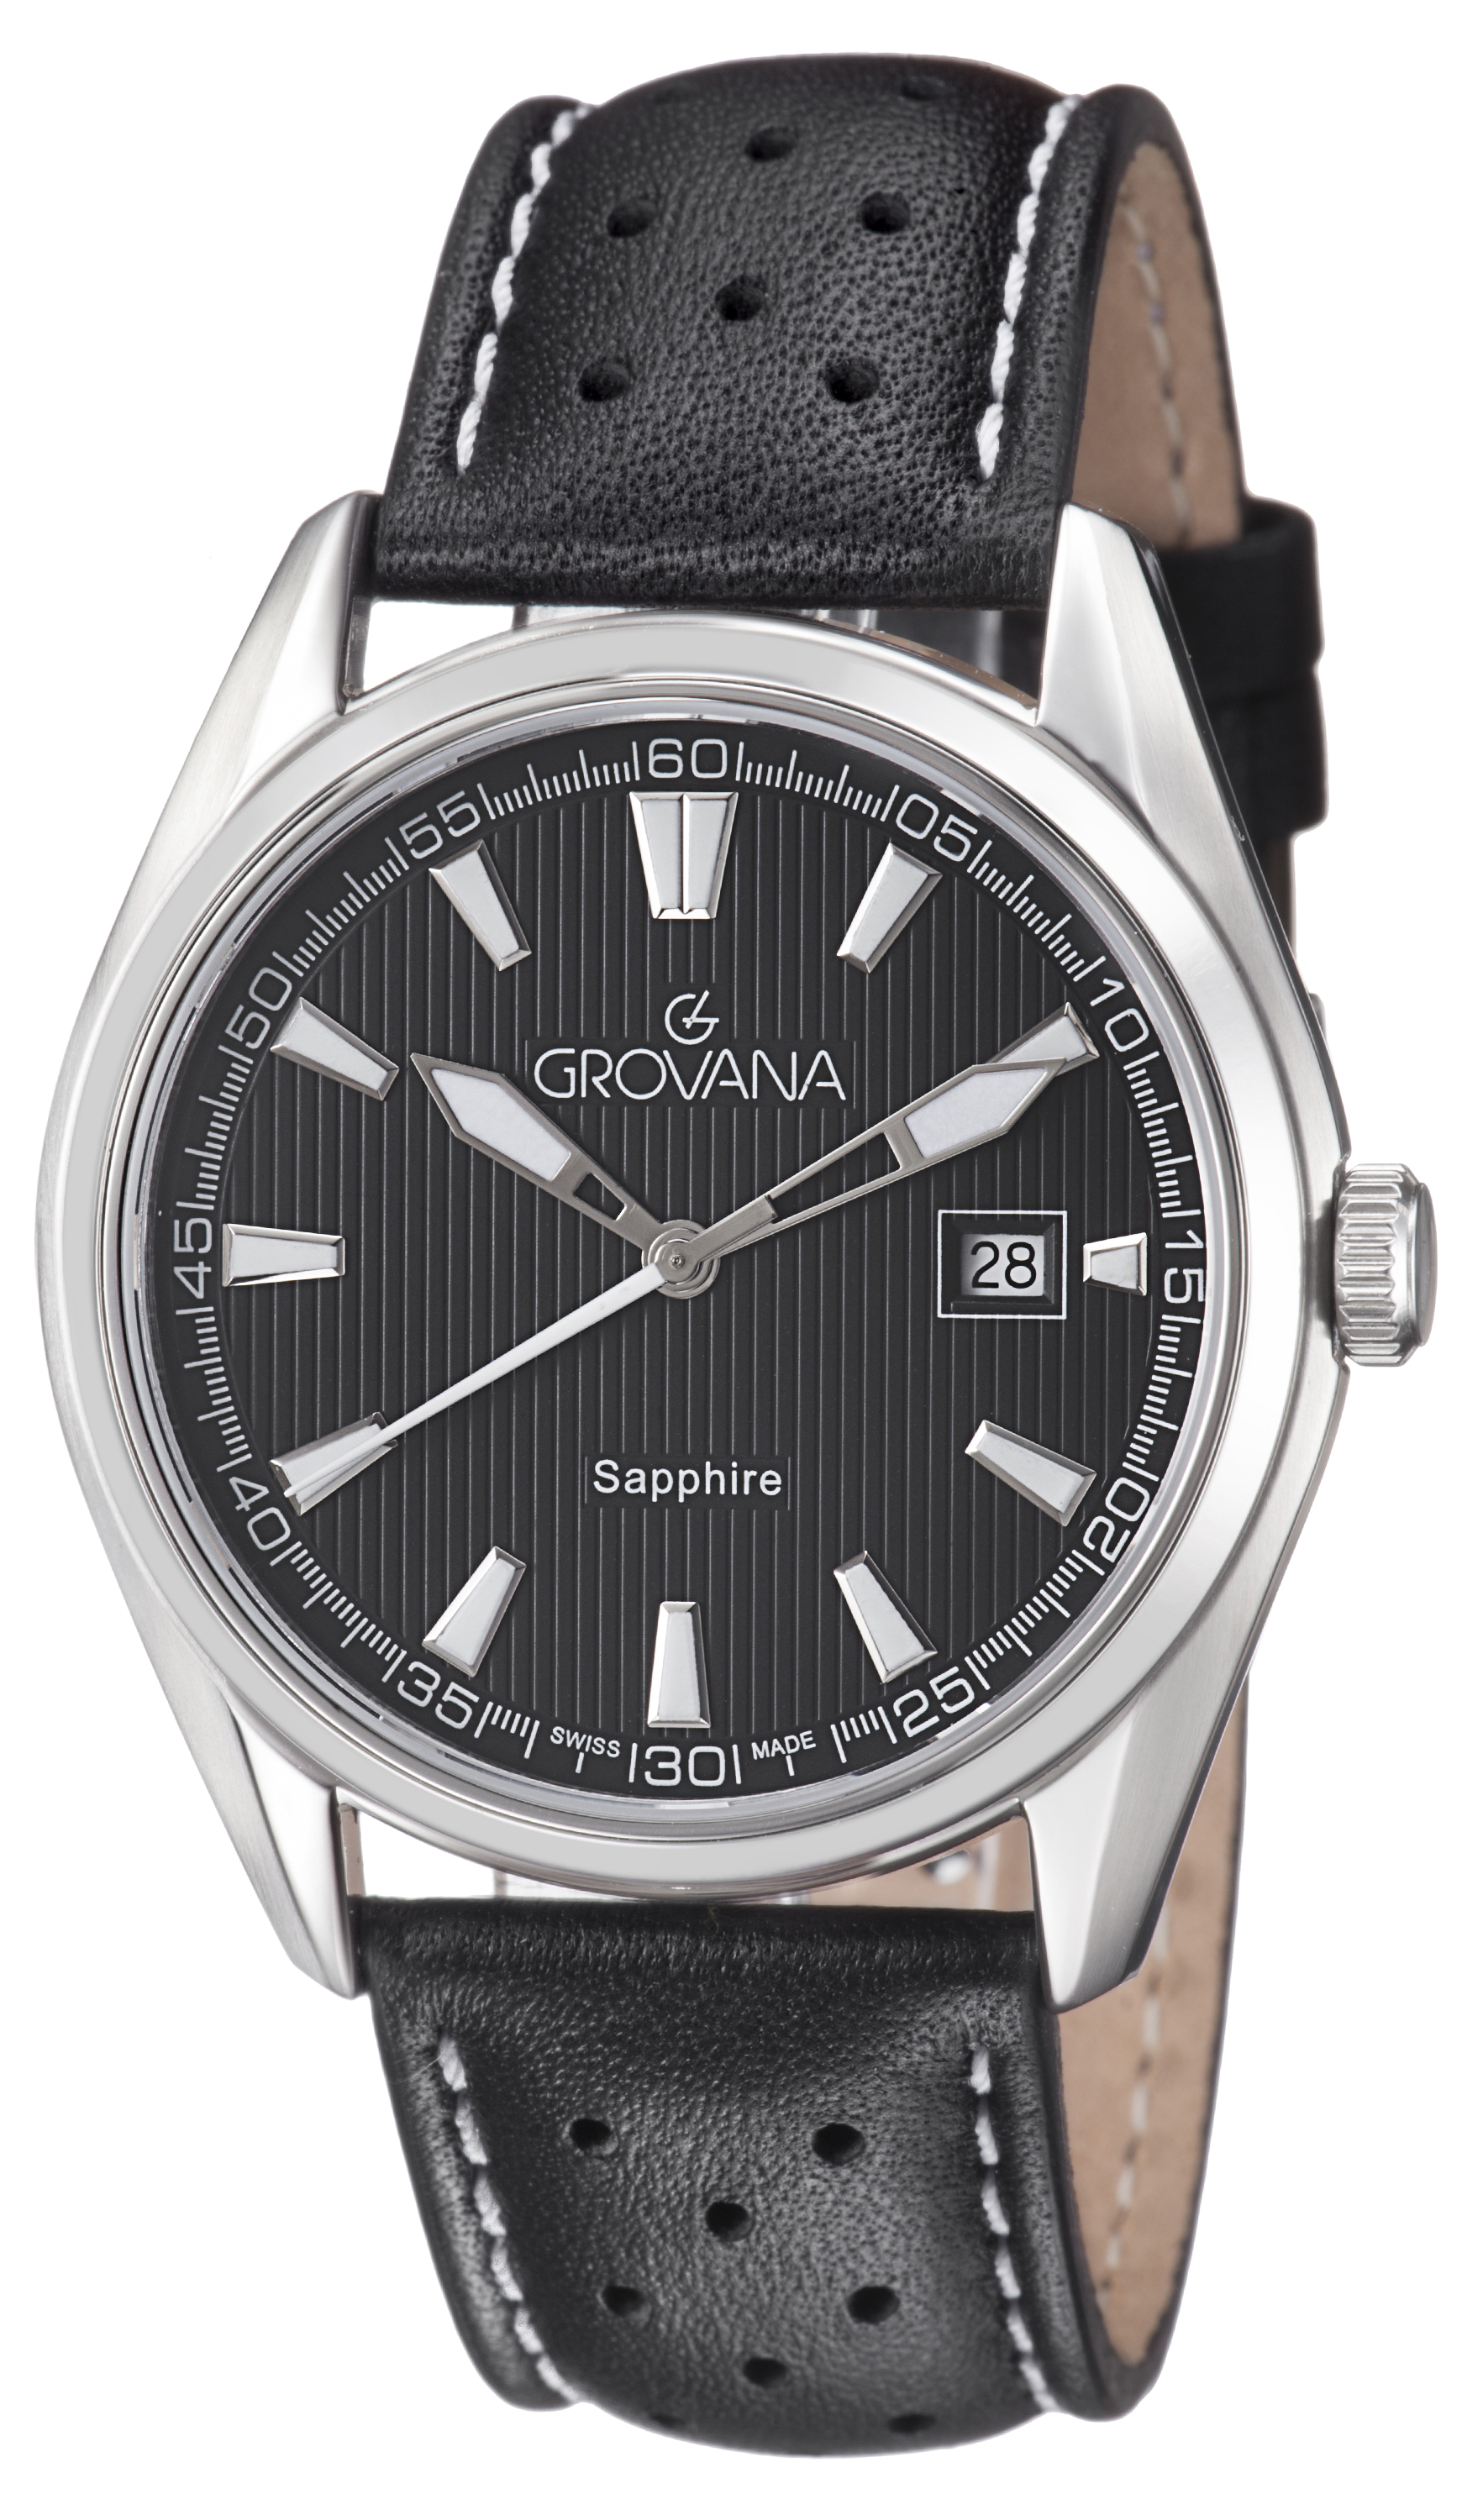 Image of Grovana Traditional Mens Watch Model 1584.1533